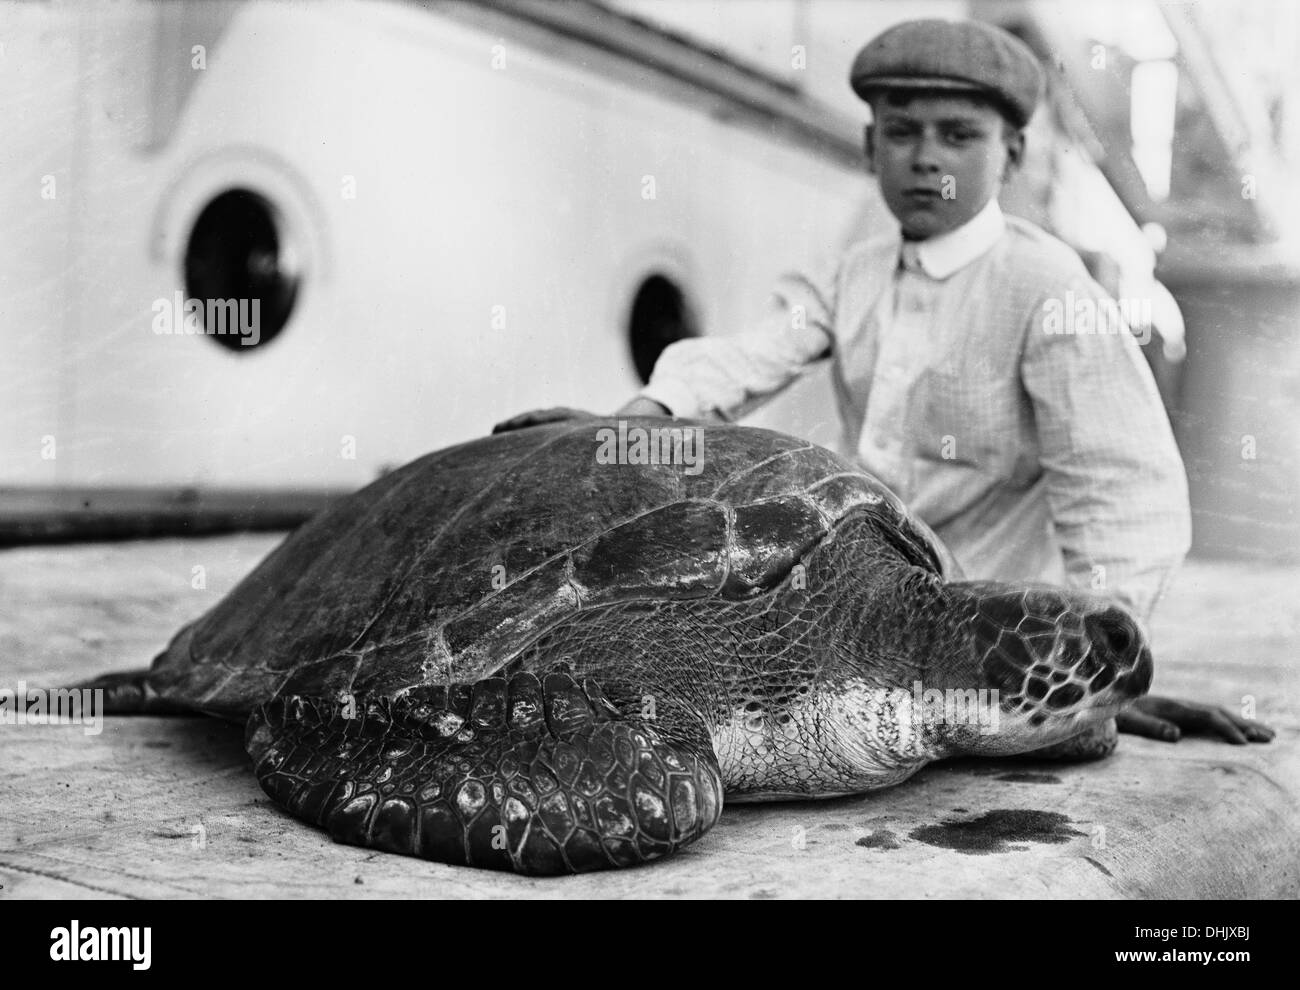 Venezuela. A boy with a turtle is pictured aboard a transatlantic passenger ship in Venezuela, around 1910. The image was taken by the German photographer Oswald Lübeck, one of the earliest representatives of travel photography and ship photography aboard passenger ships. Photo: Deutsche Fotothek/Oswald Lübeck - Stock Image